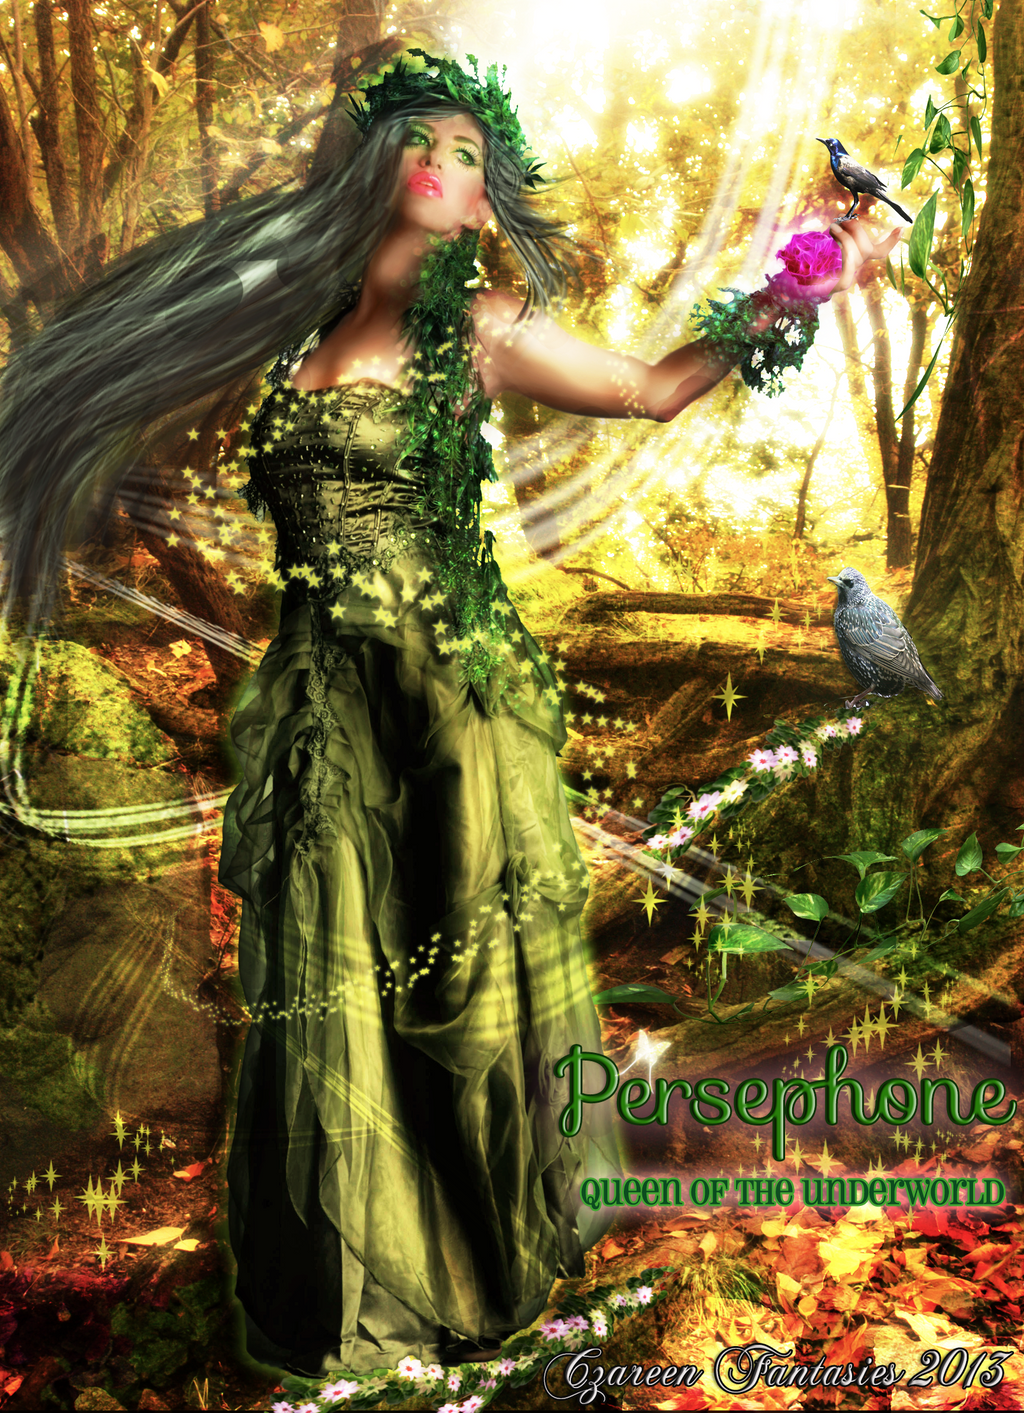 Persephone: Queen of The Underworld by CzareenYJ on DeviantArt